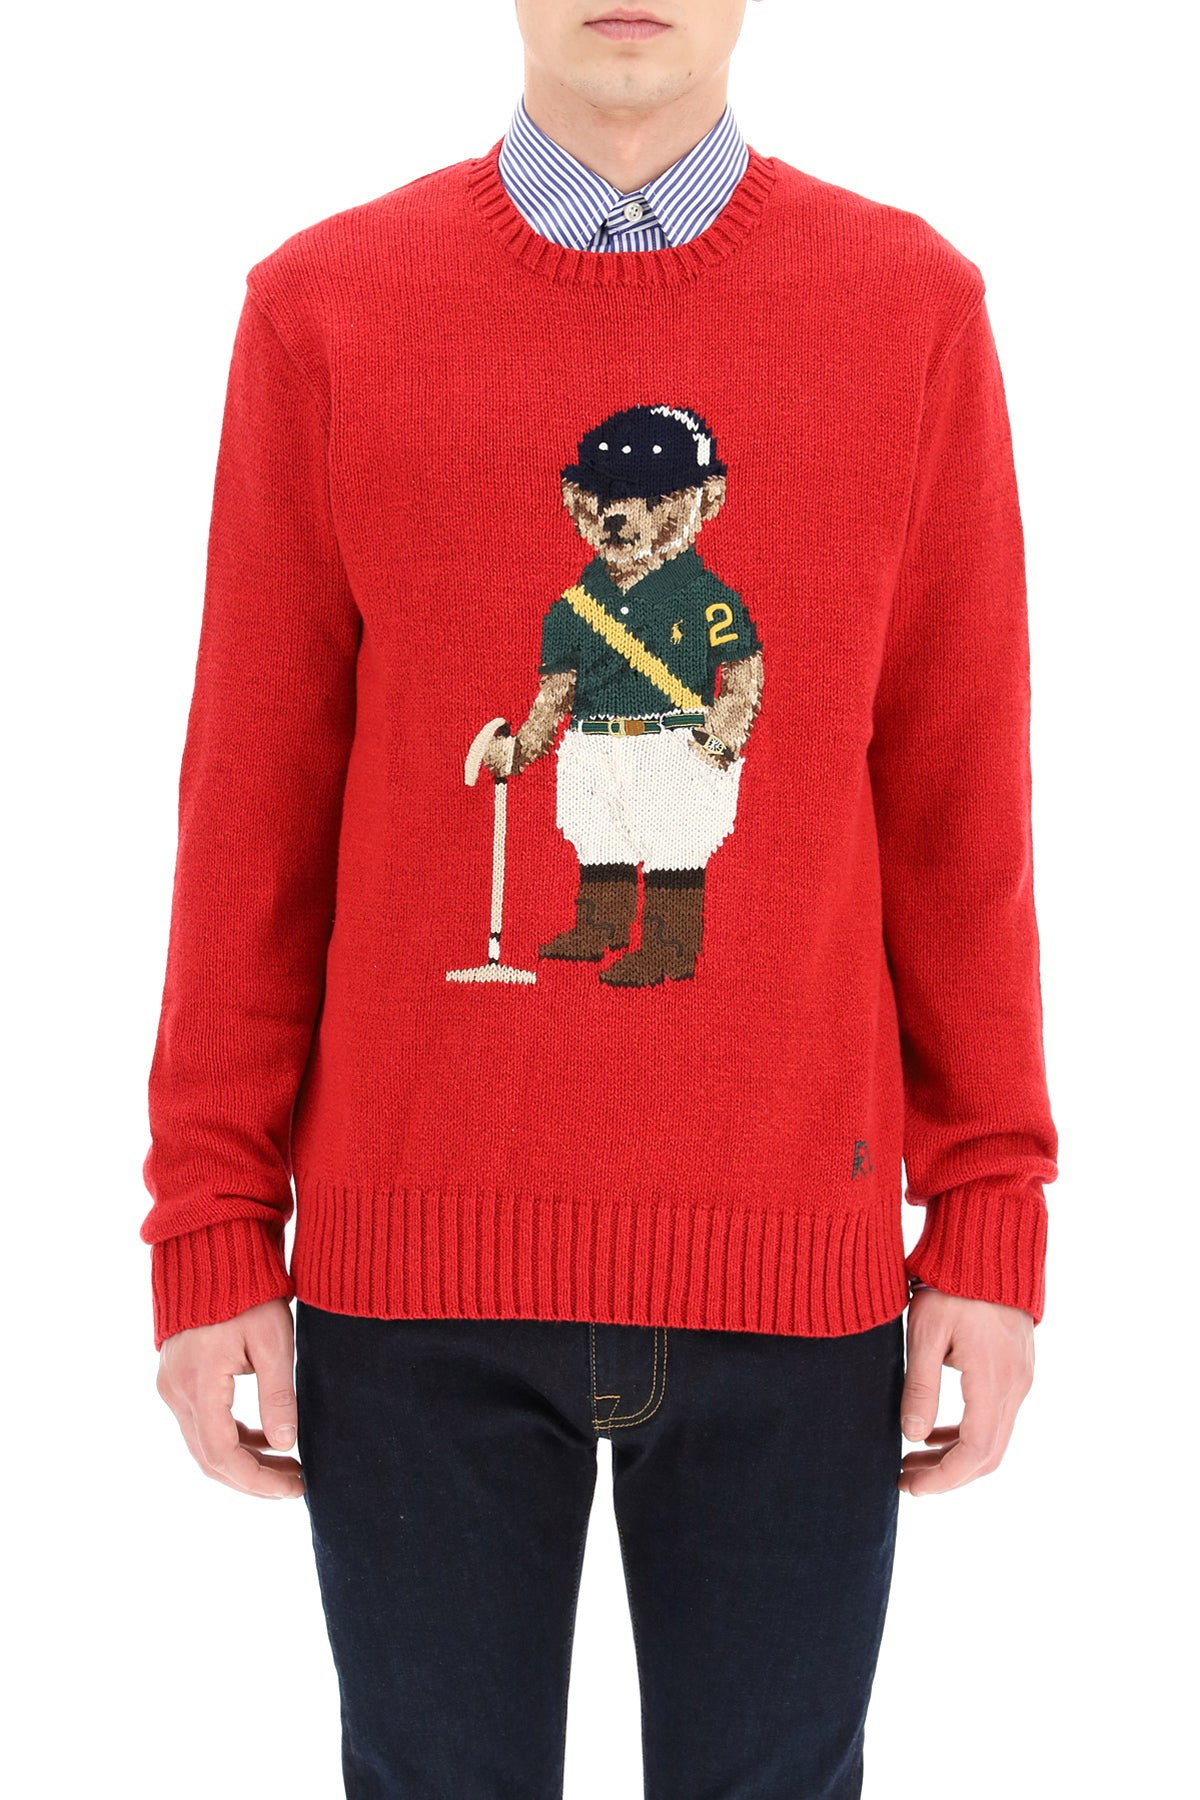 Polo Ralph Lauren POLO RALPH LAUREN POLO PLAYER BEAR INTARSIA SWEATER